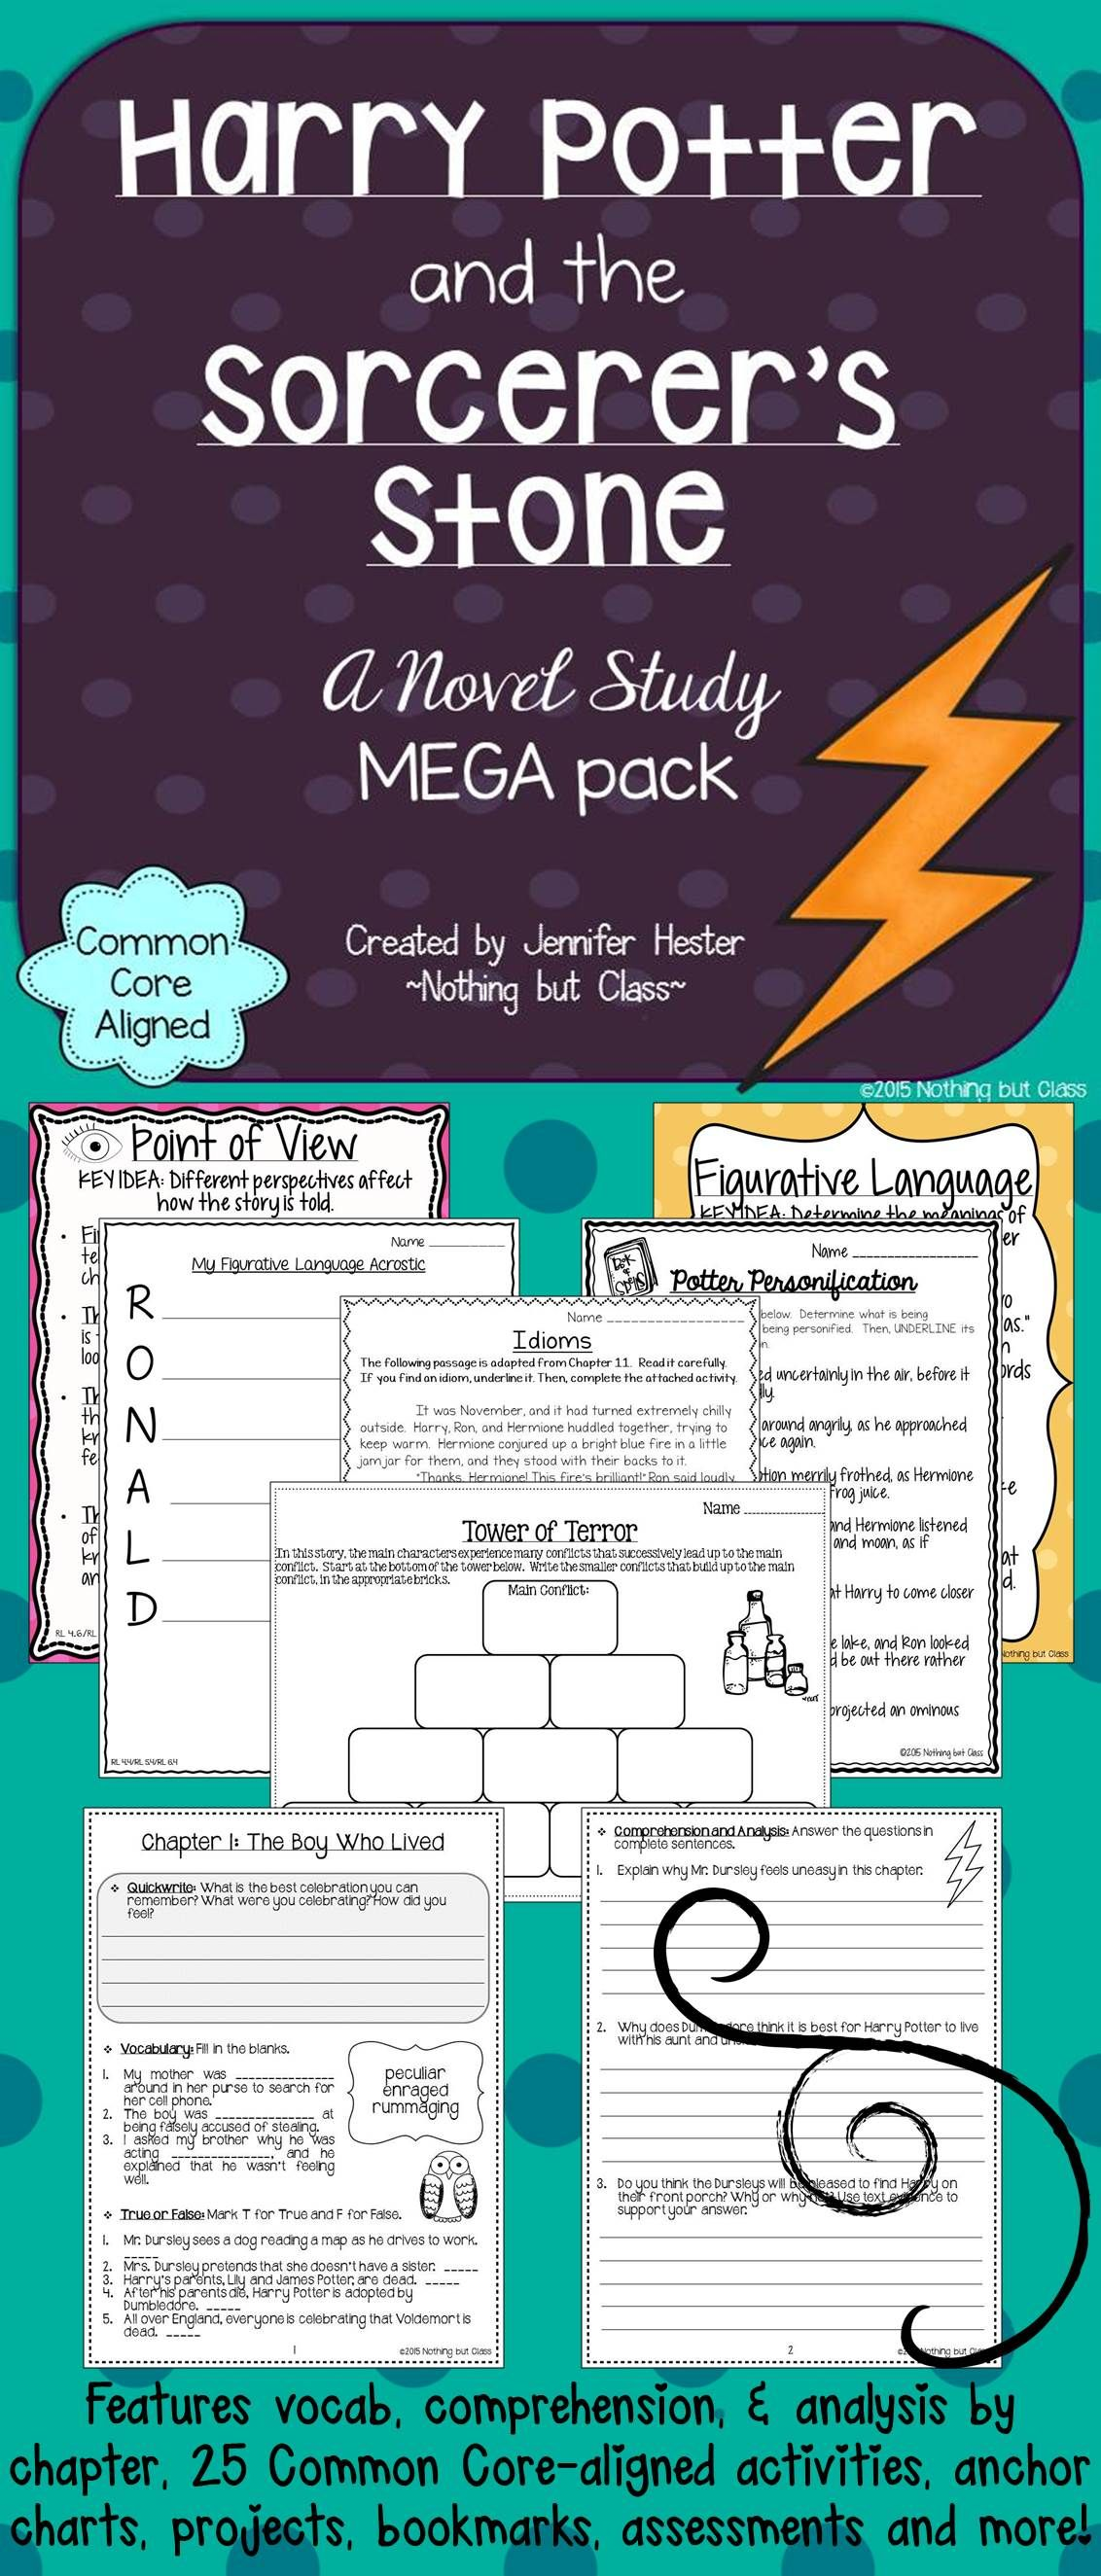 harry potter creative writing printables a focus on harry potter and the sorcerer s stone novel study unit mega pack